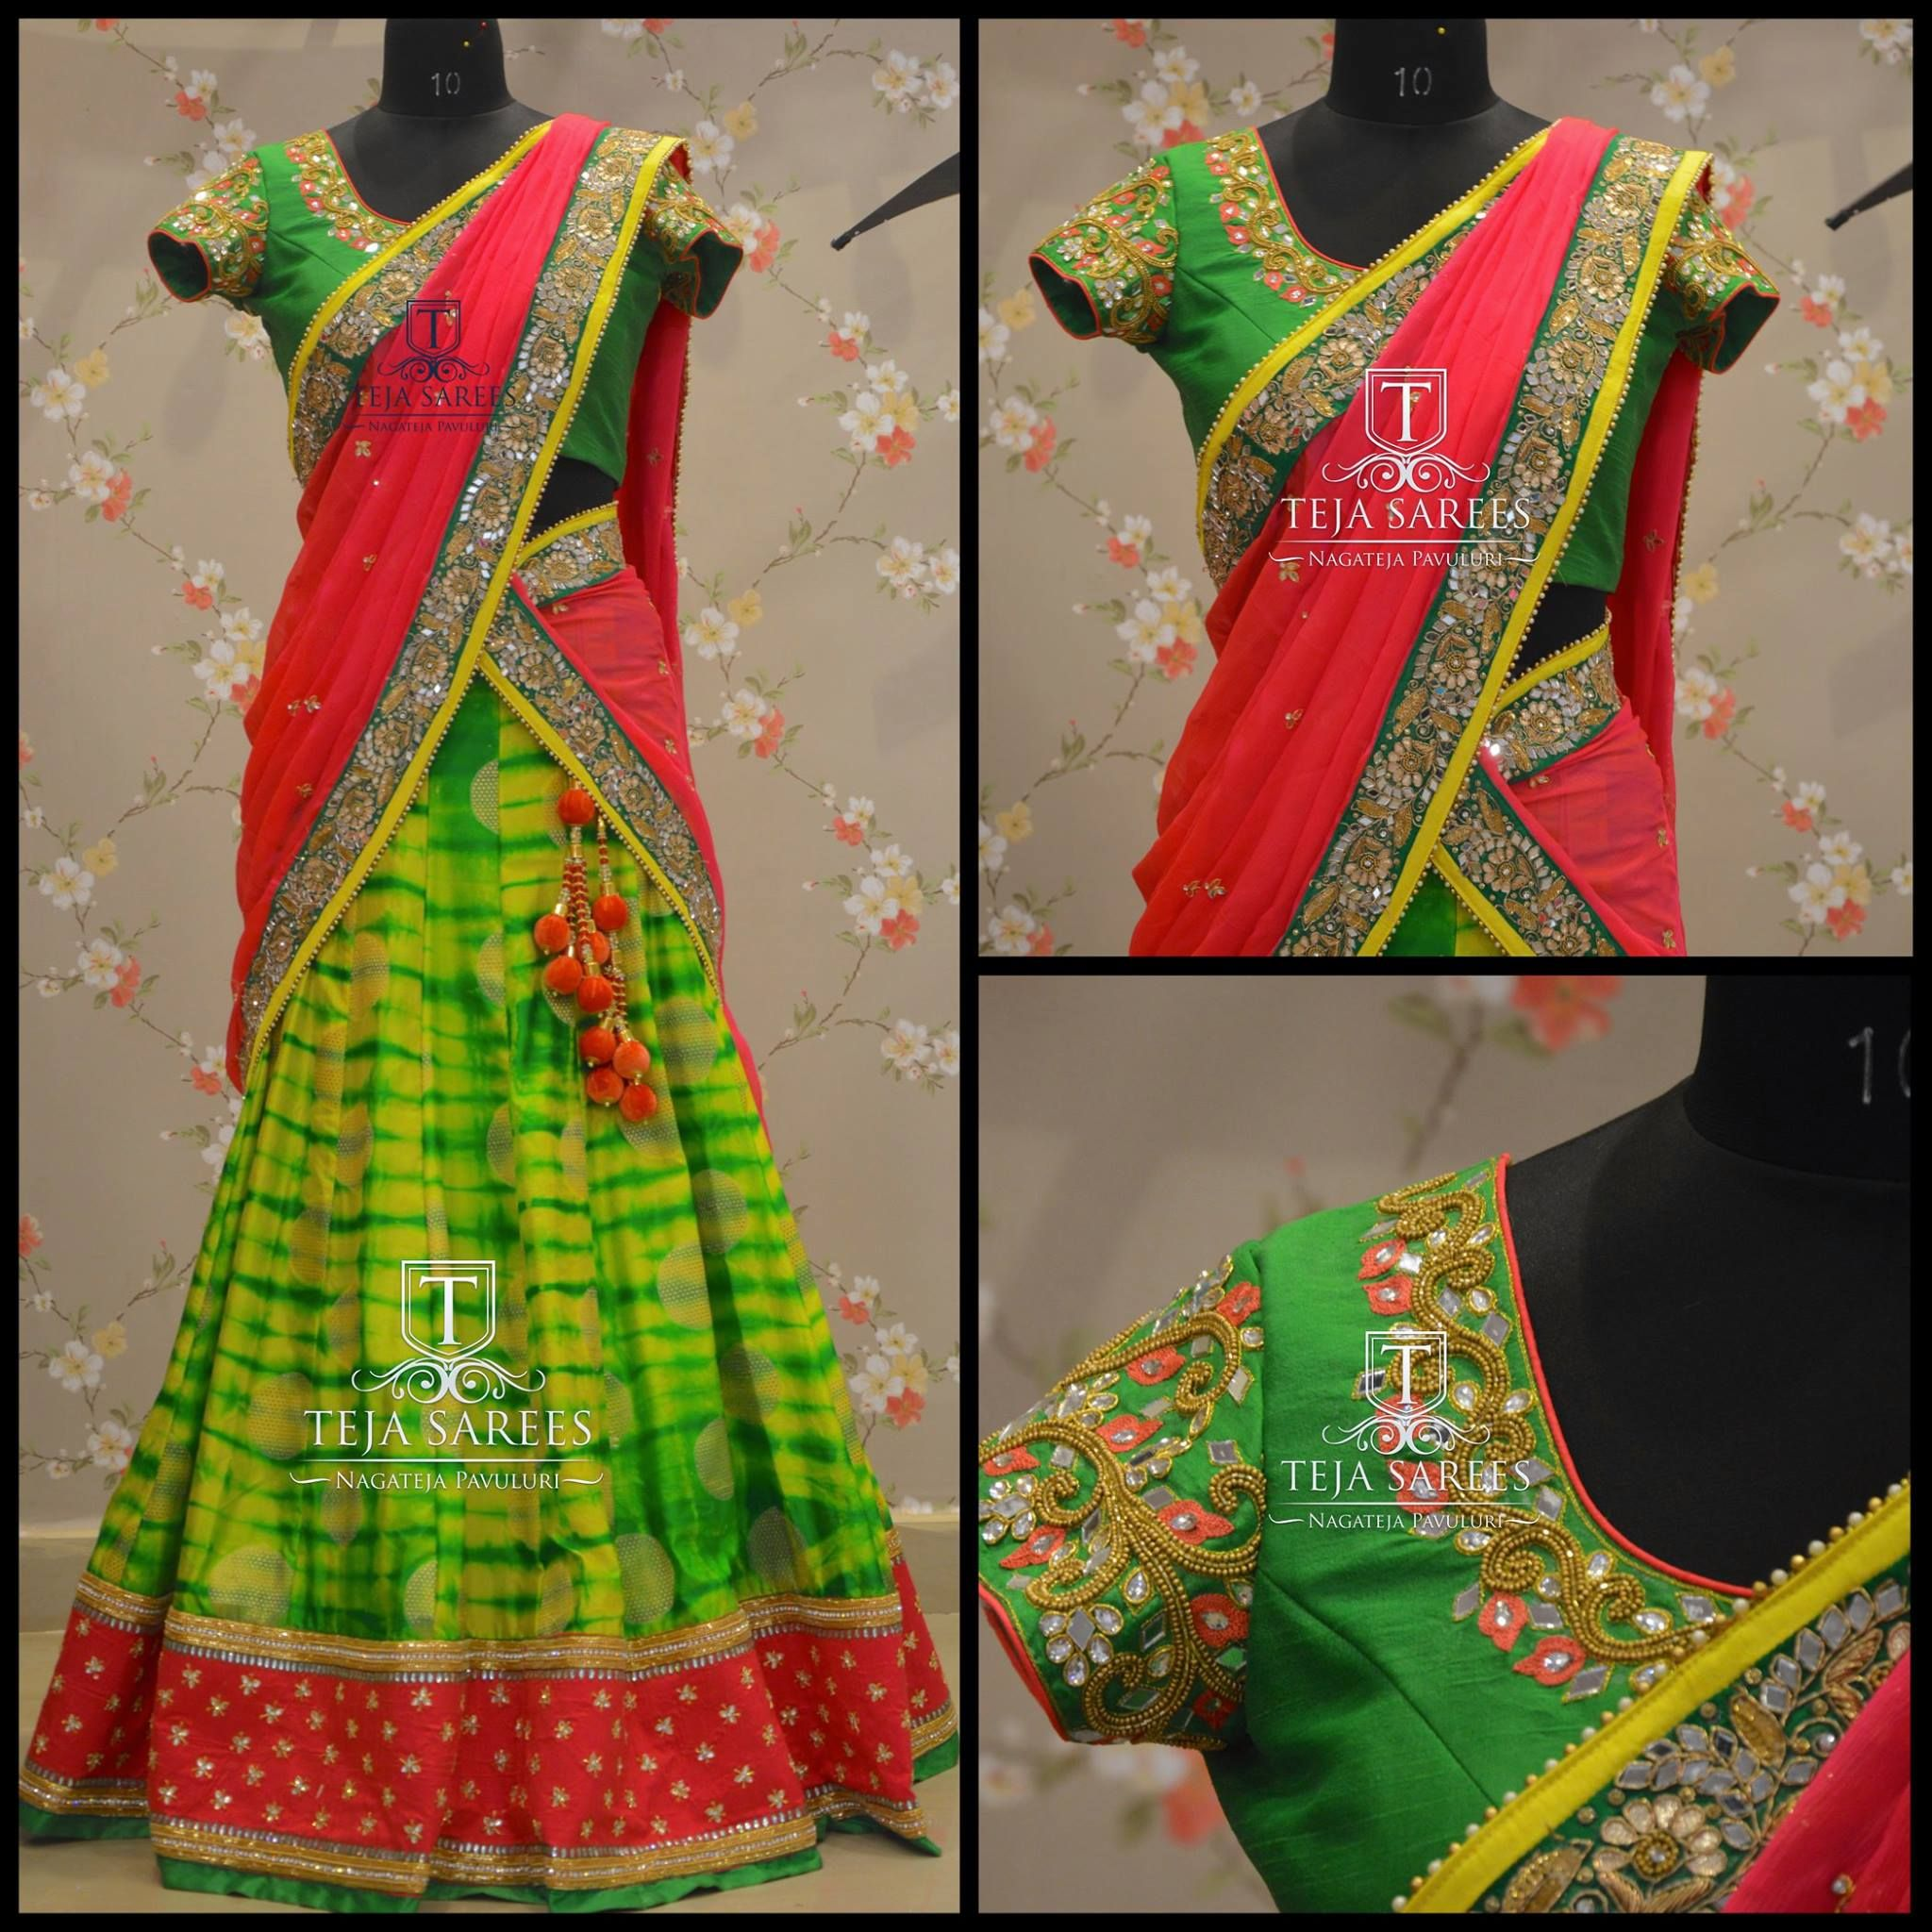 TS 3LH4 - 178 - DECFor queries/ price detailsWhats App us on8341382382 Reach us on8790382382 orplease mail us attejasarees@yahoo.com tejasarees  LikeNeverBefore  hyderabad  designerwear  bridal  halfsarees  traditional  tejupavuluri  04 December 2016